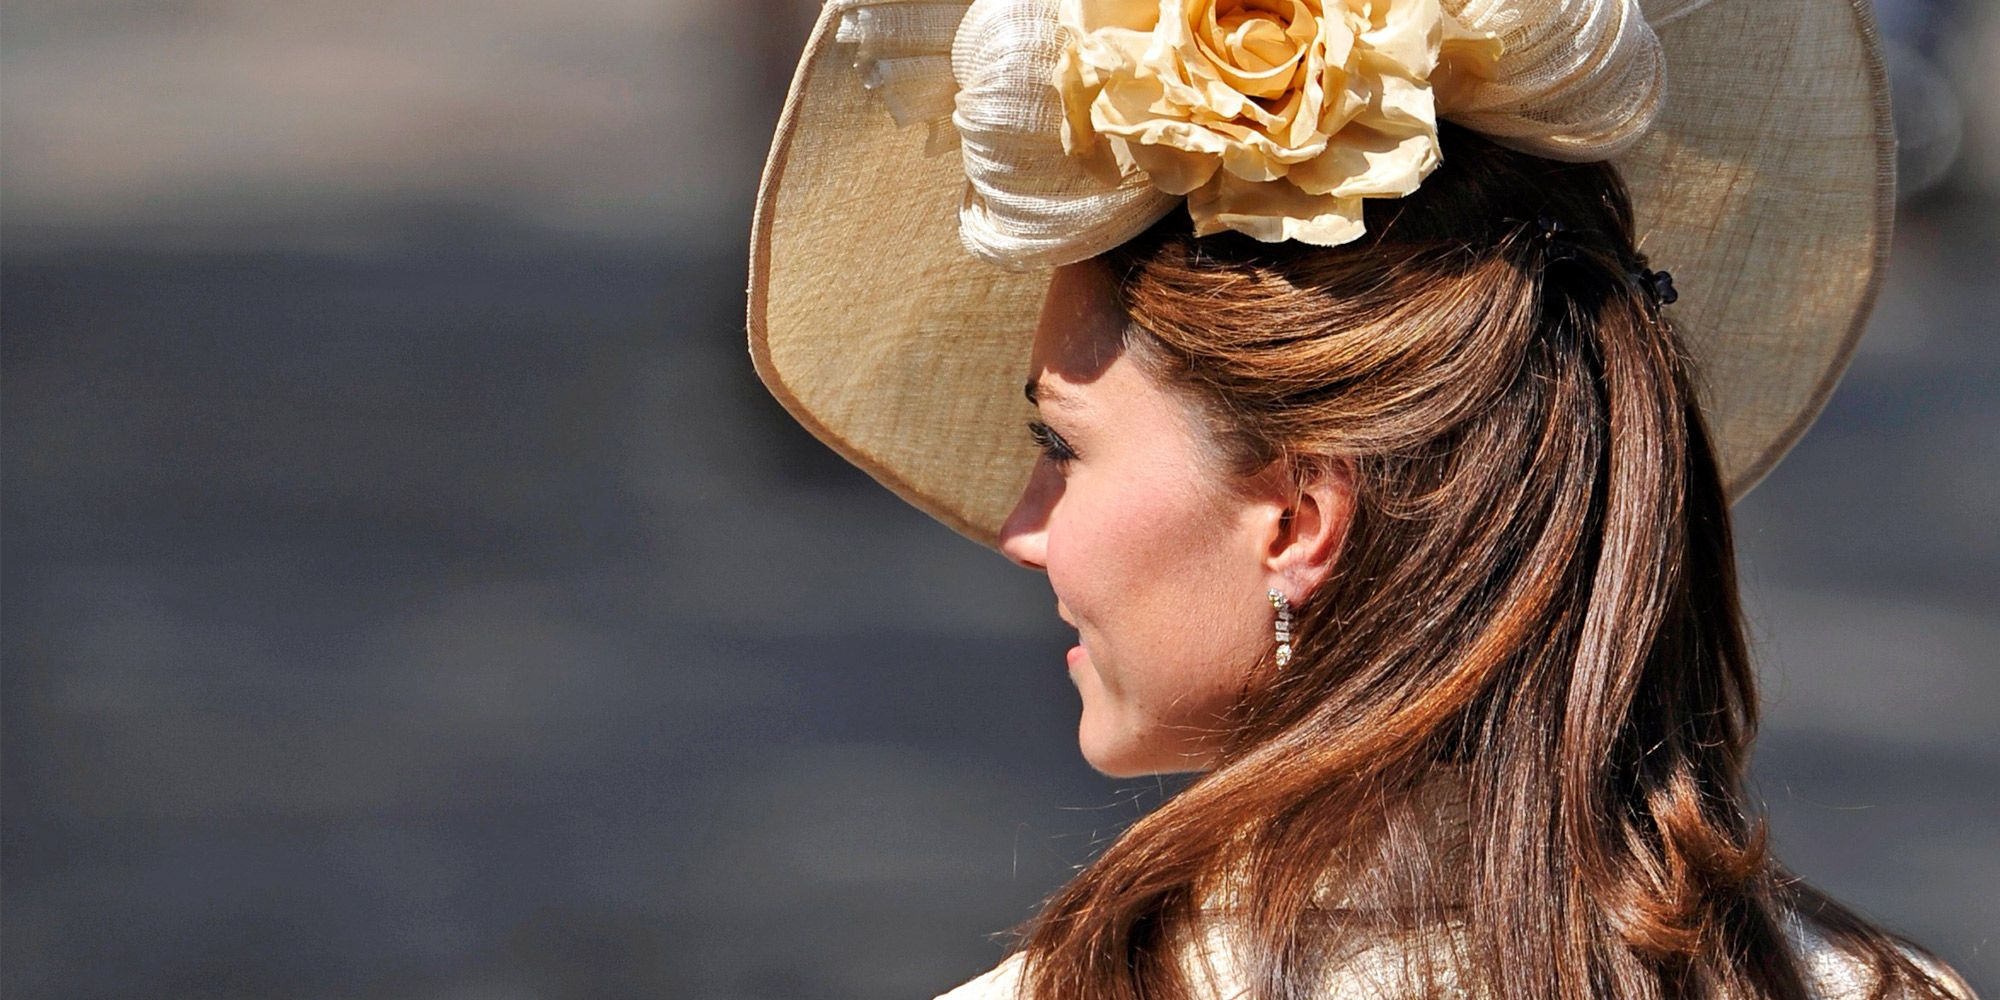 12 best royal wedding guests hairstyles of all time - royal